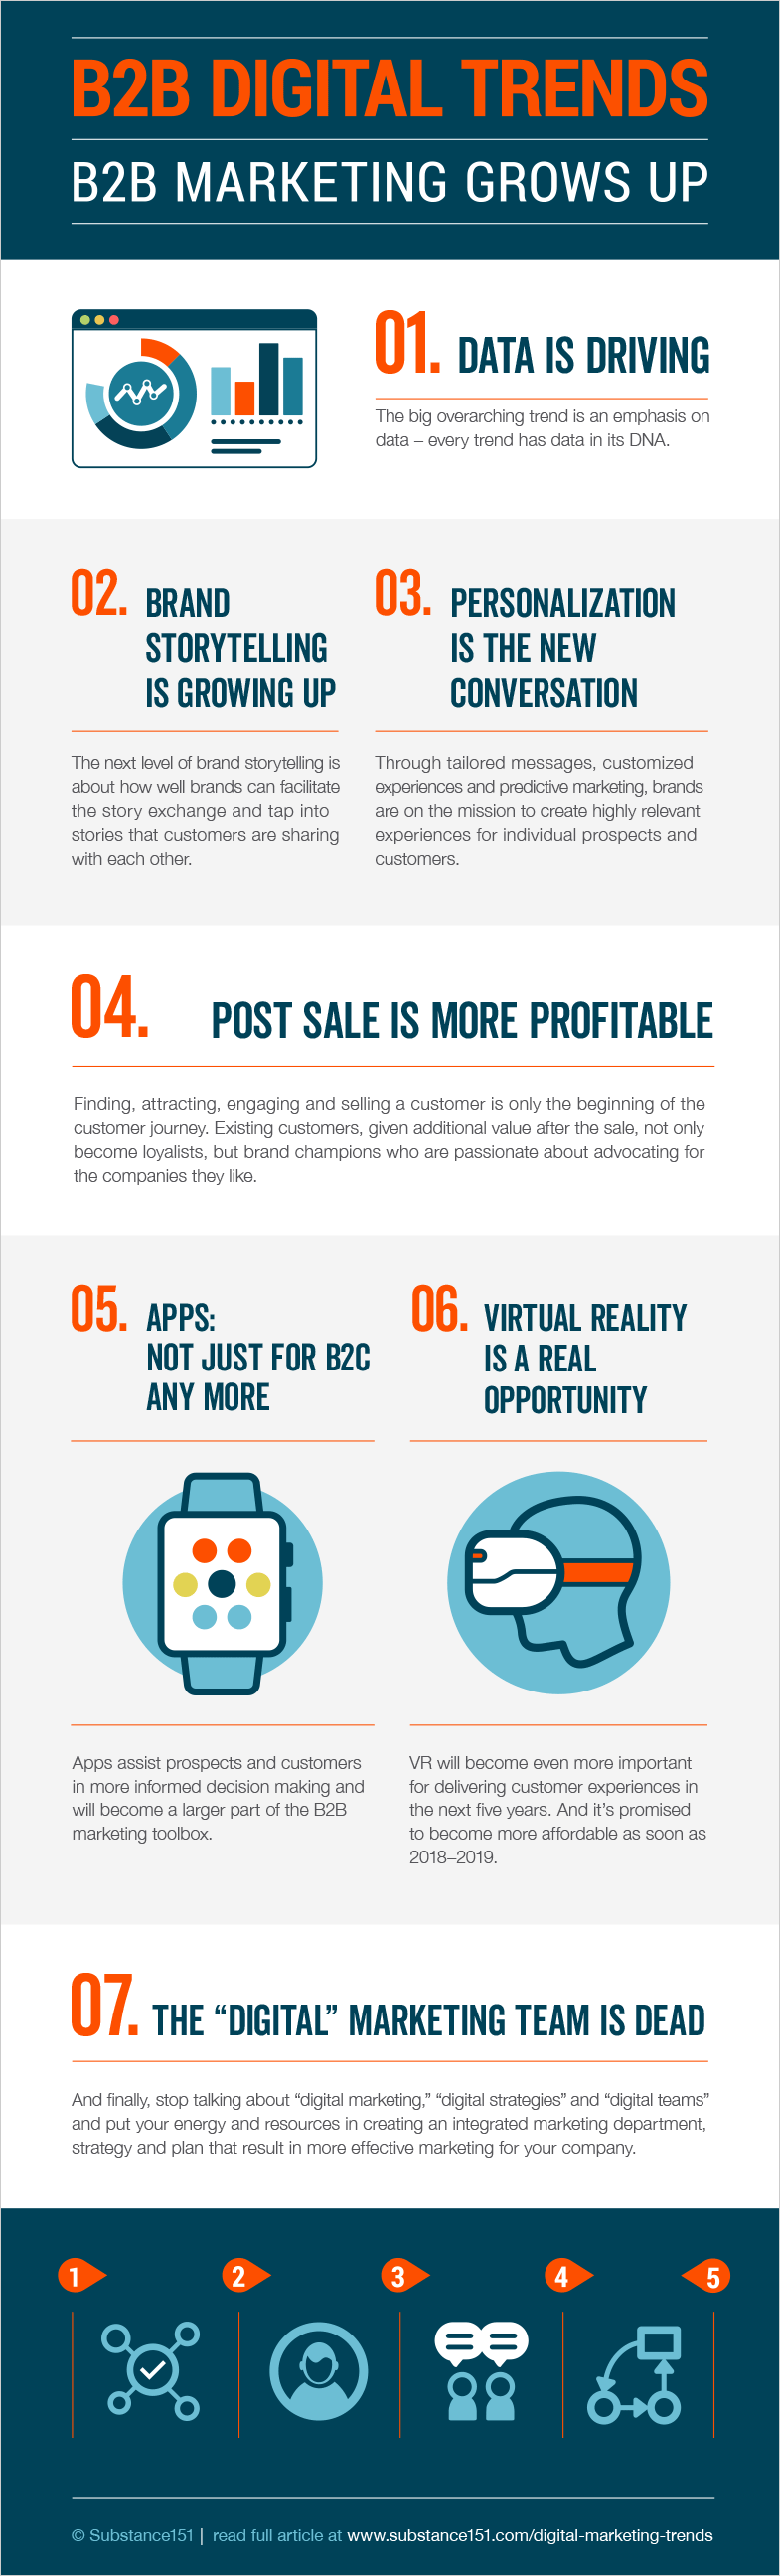 B2B digital marketing trends infographic